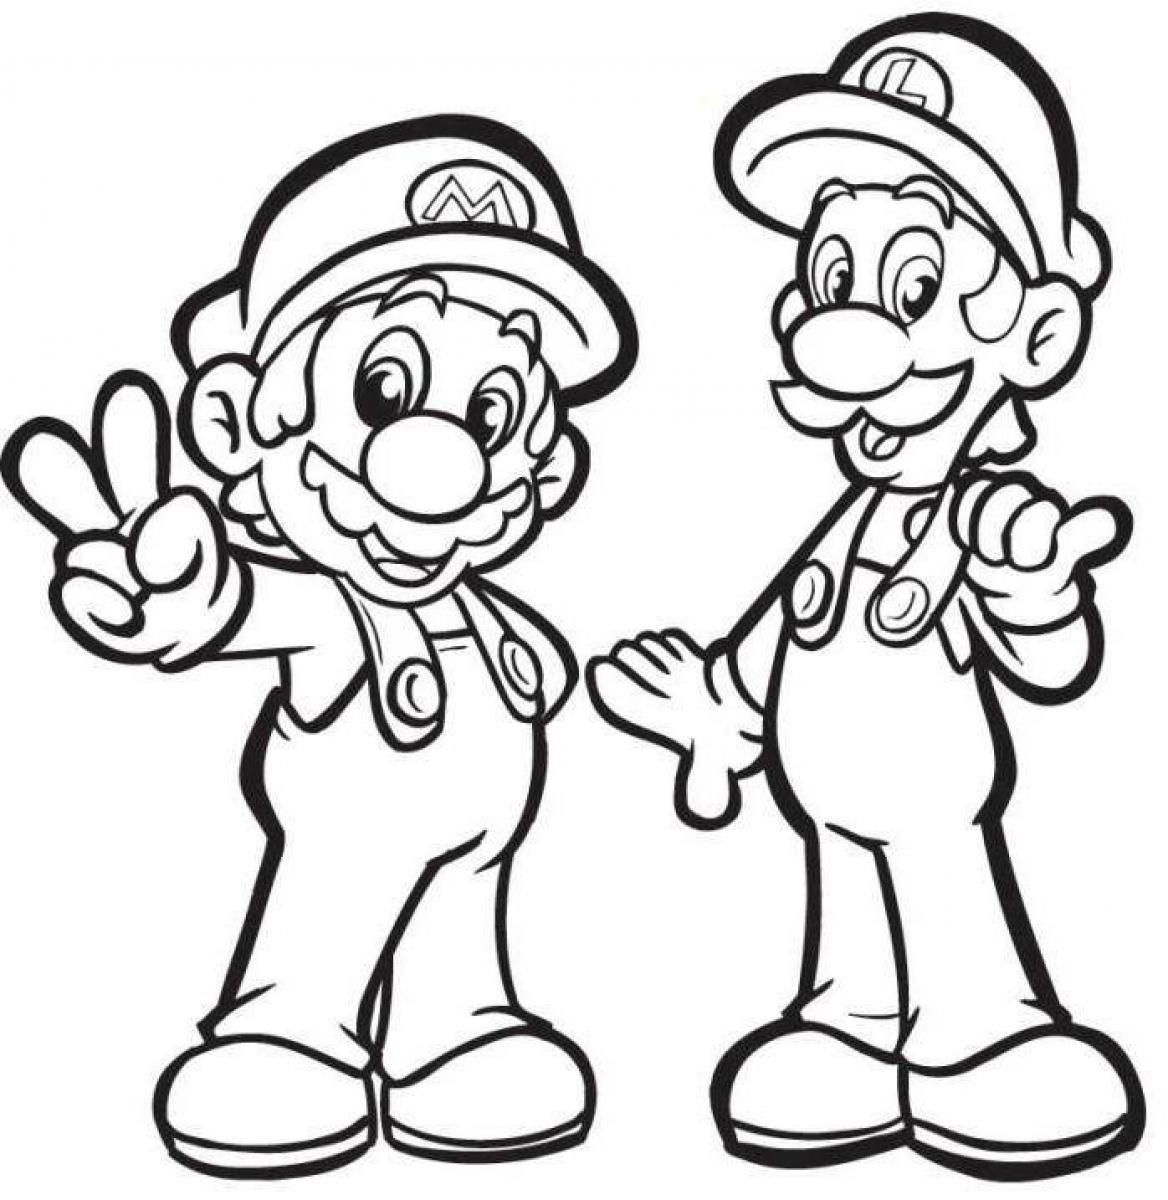 print jatnlp coloring pages for favorshuge list of super mario bros party ideas gathered from different websites freebies and where to order things too